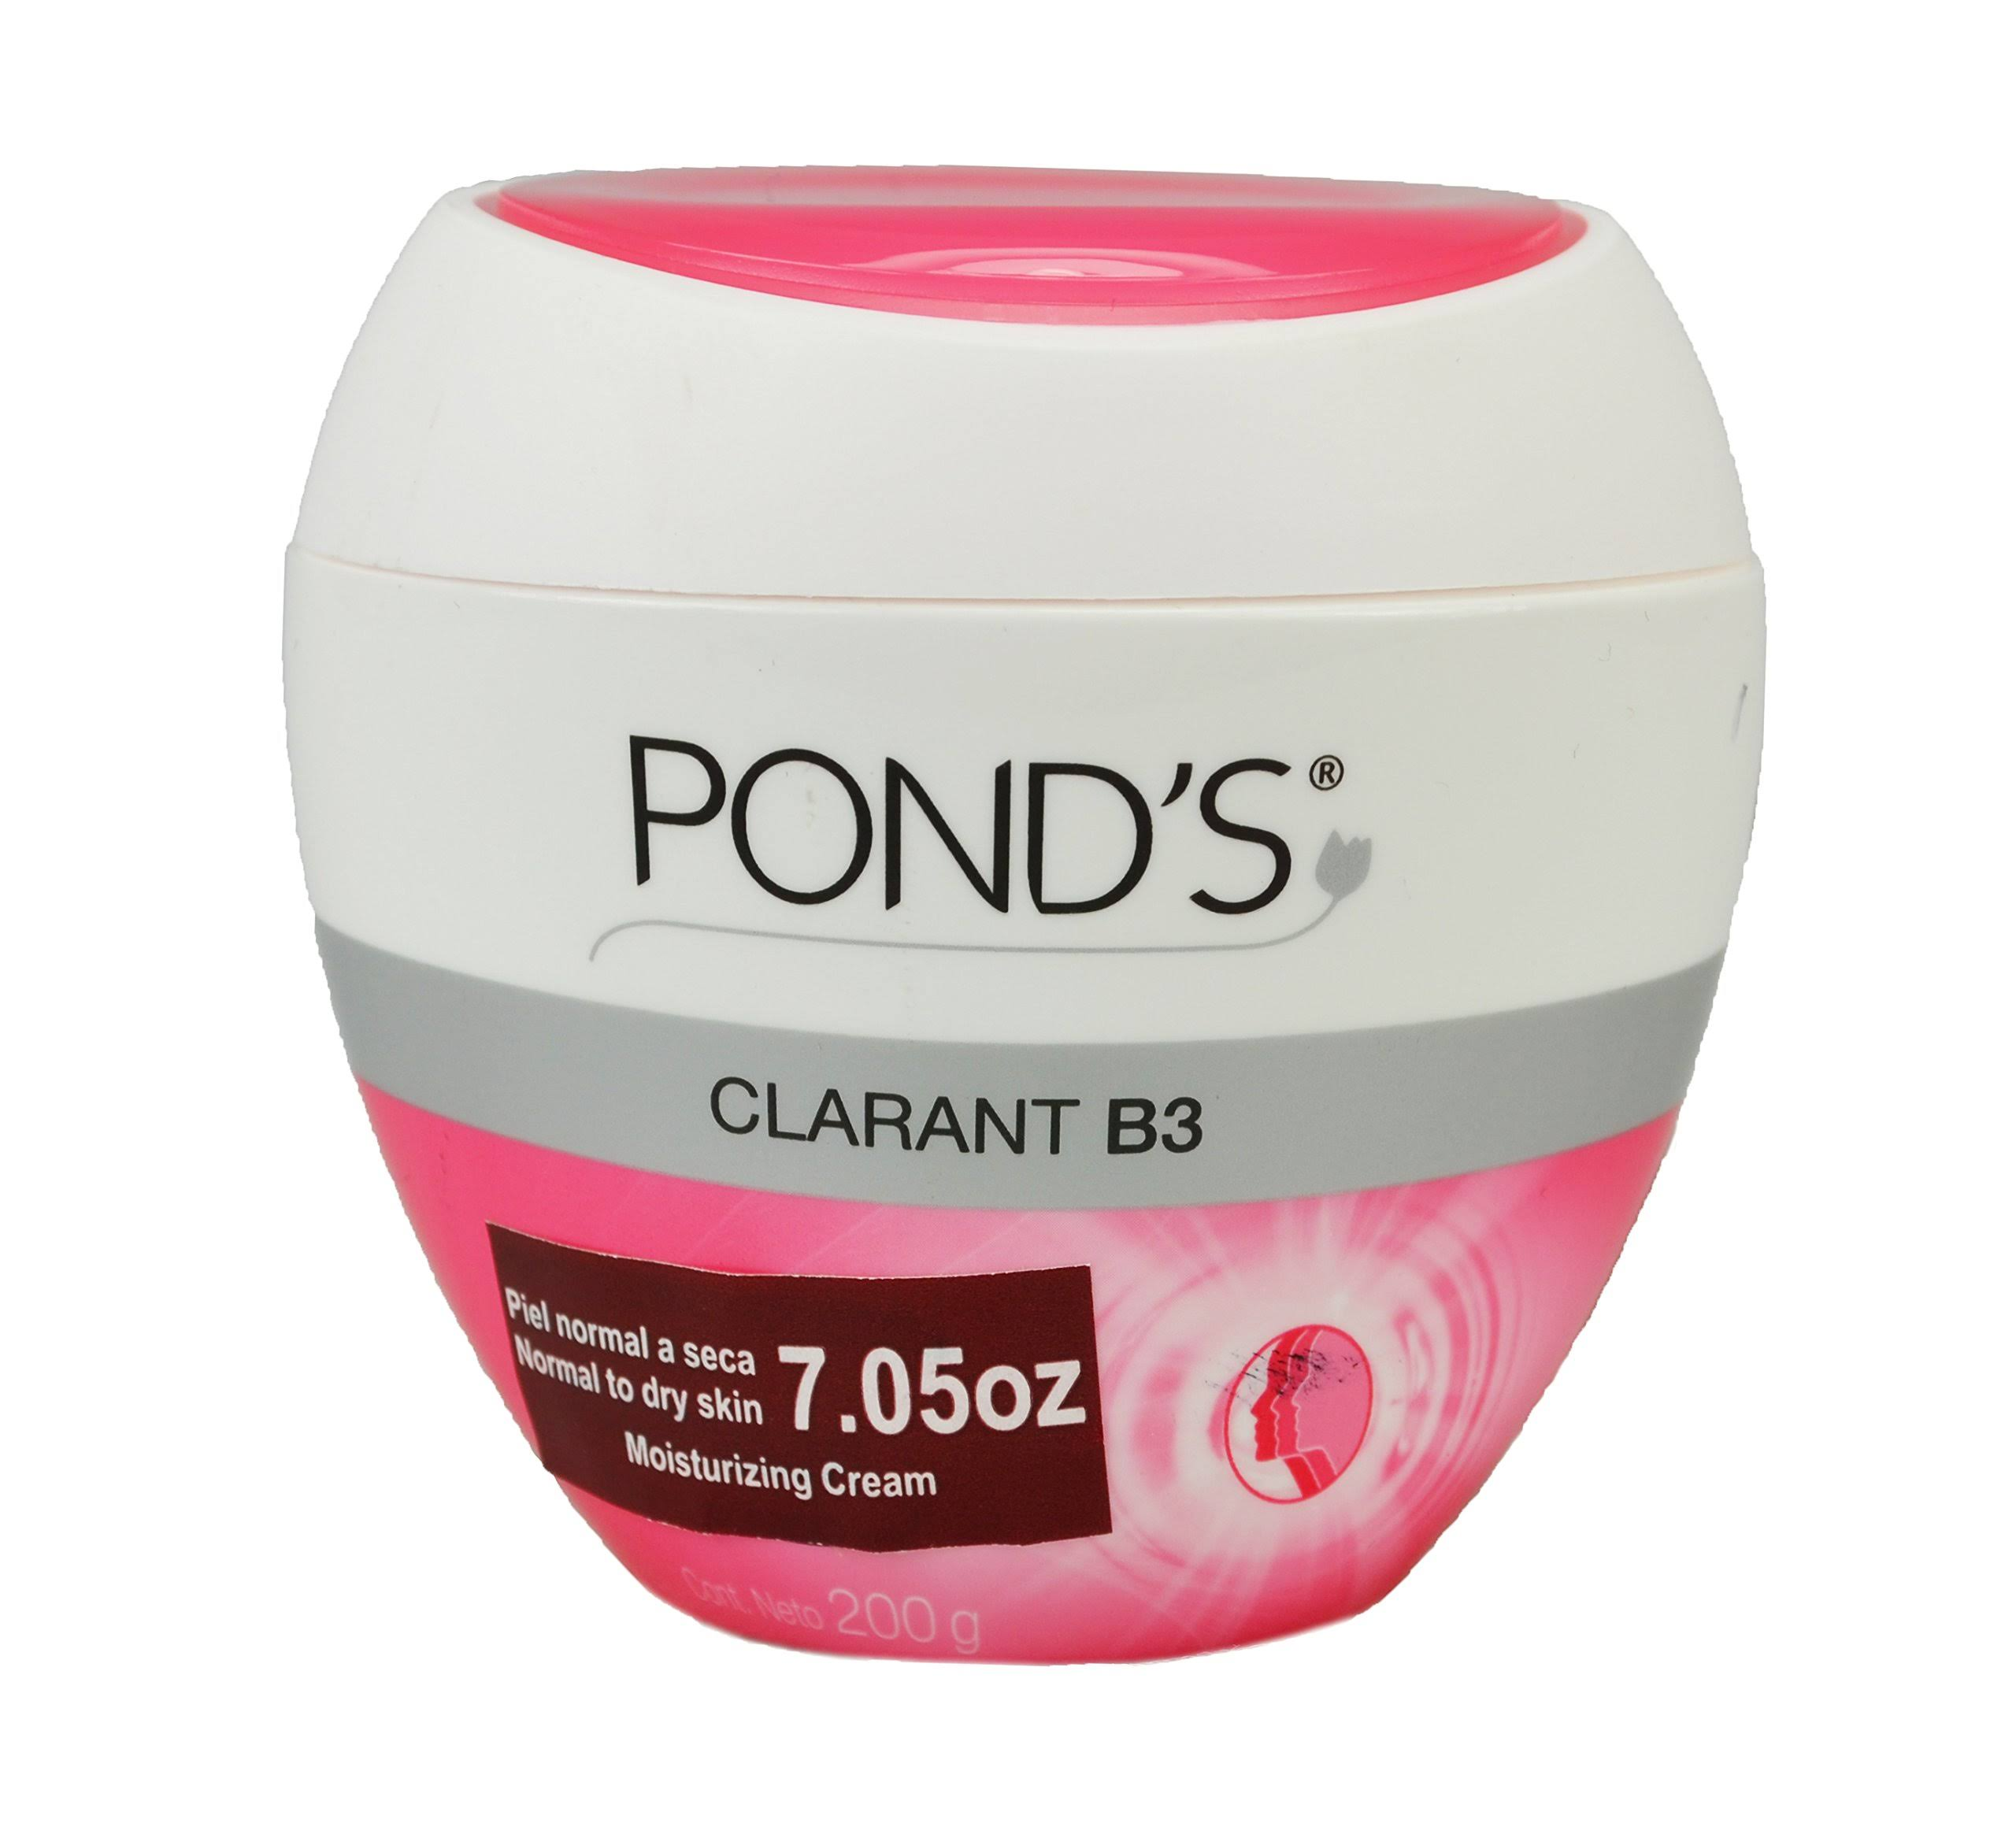 Pond's Clarant B3 Moisturizing Cream - 200g